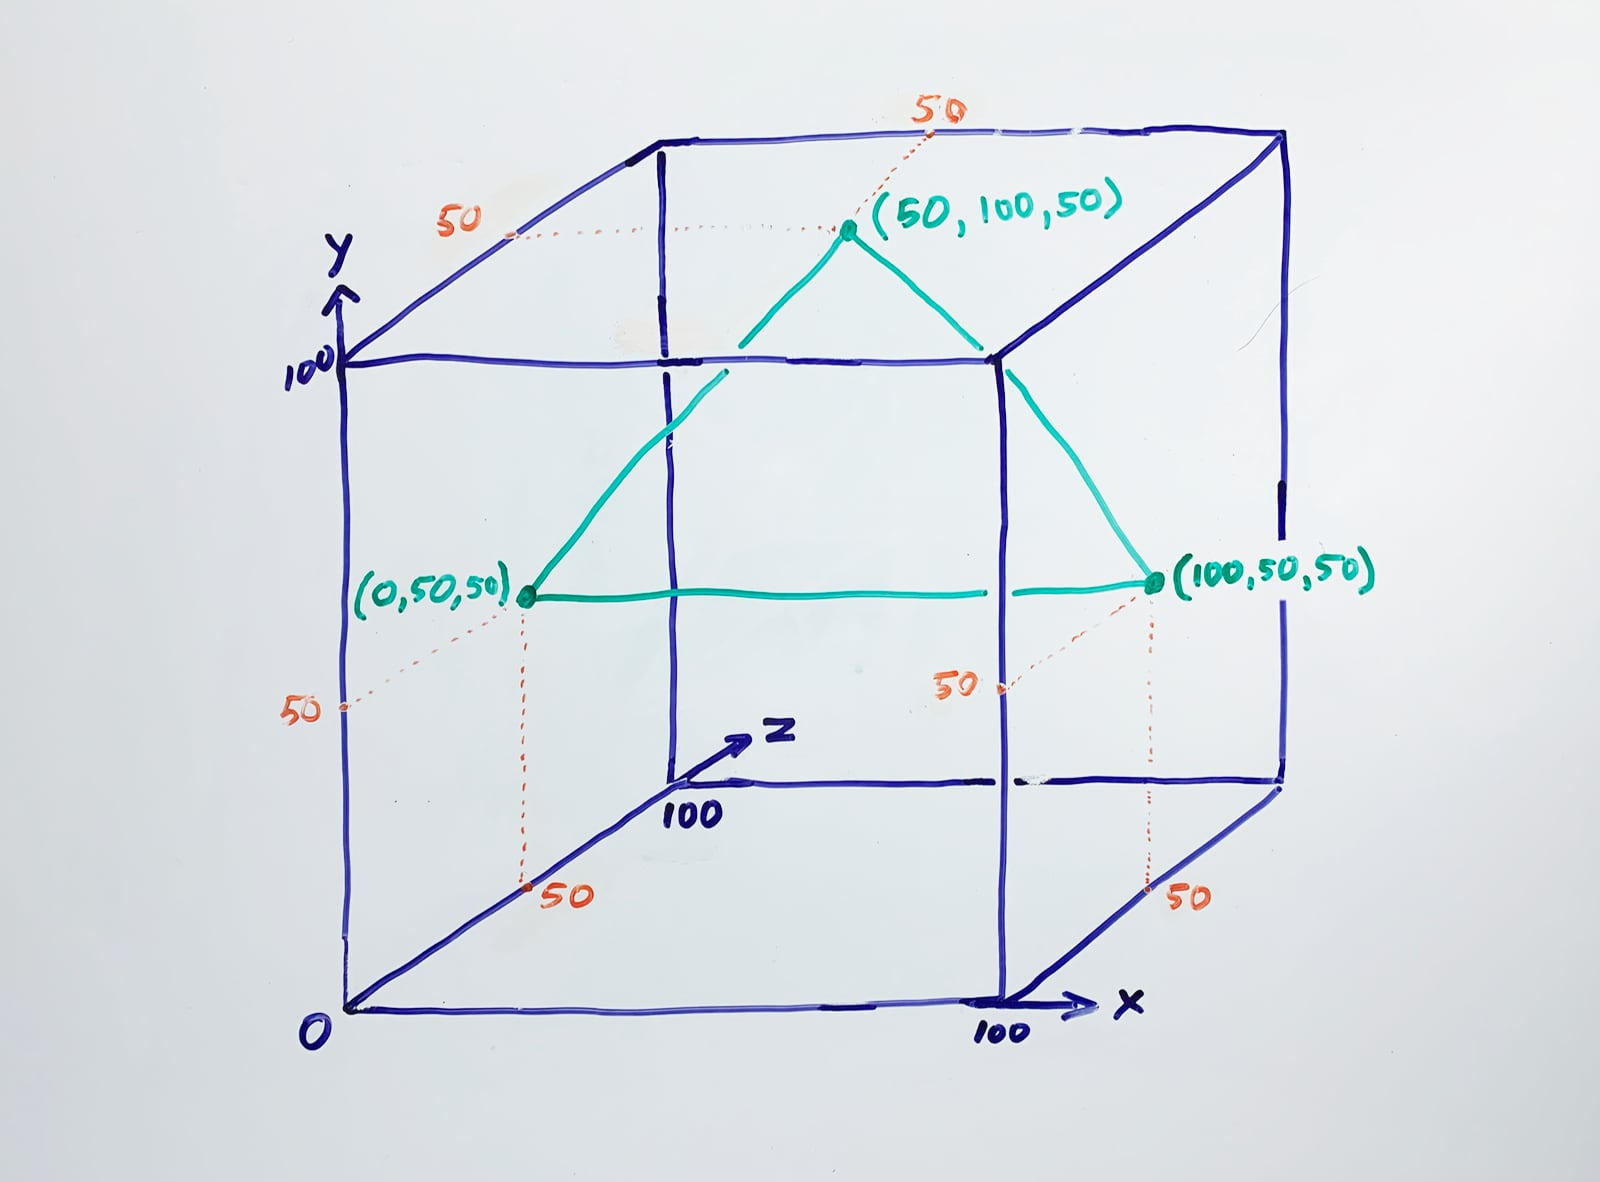 A triangle has three vertices, each of which can be defined by three coordinates in 3D space